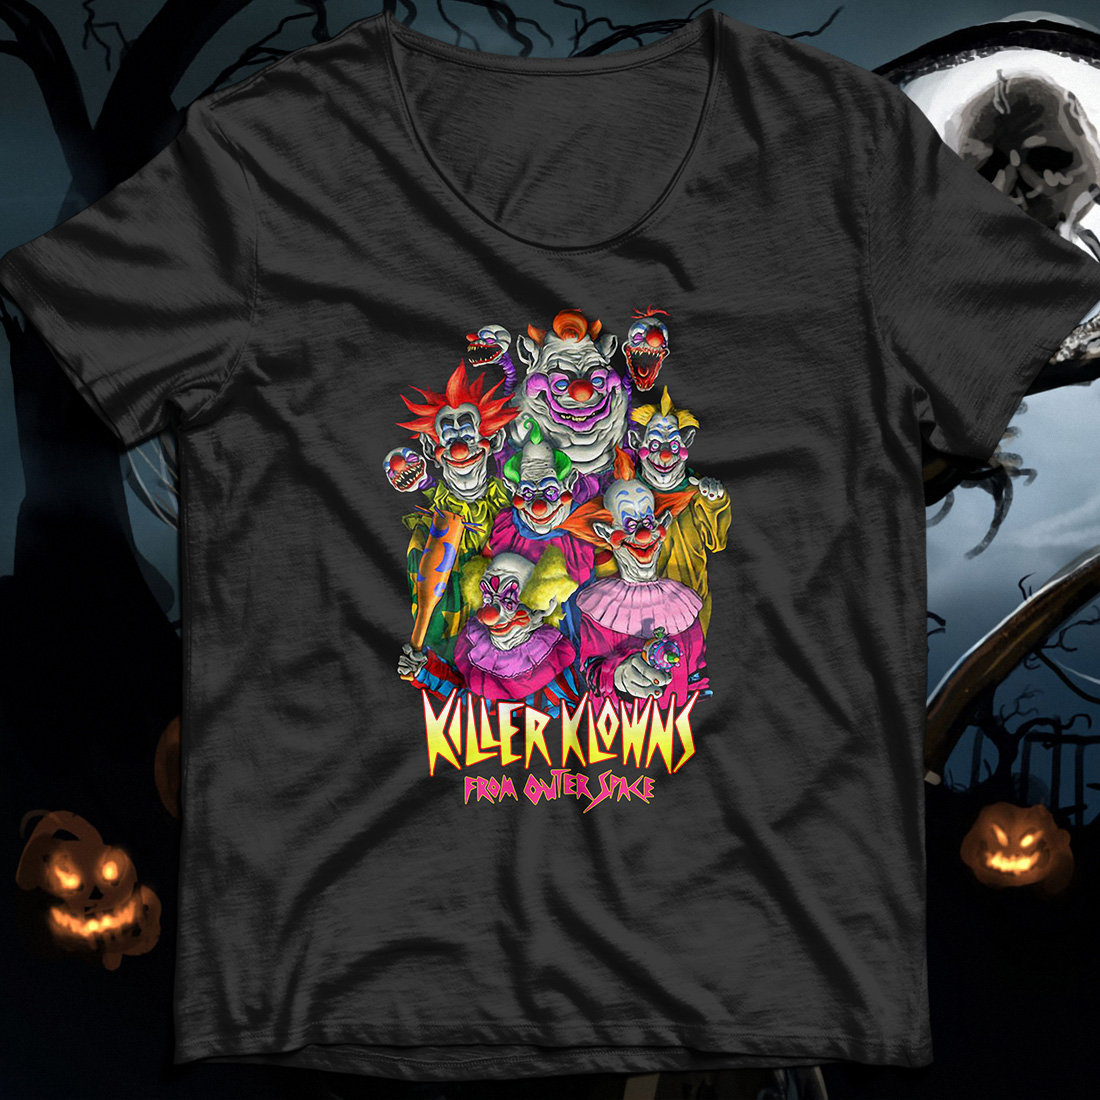 Horror Killer Klowns From Outer Space shirt